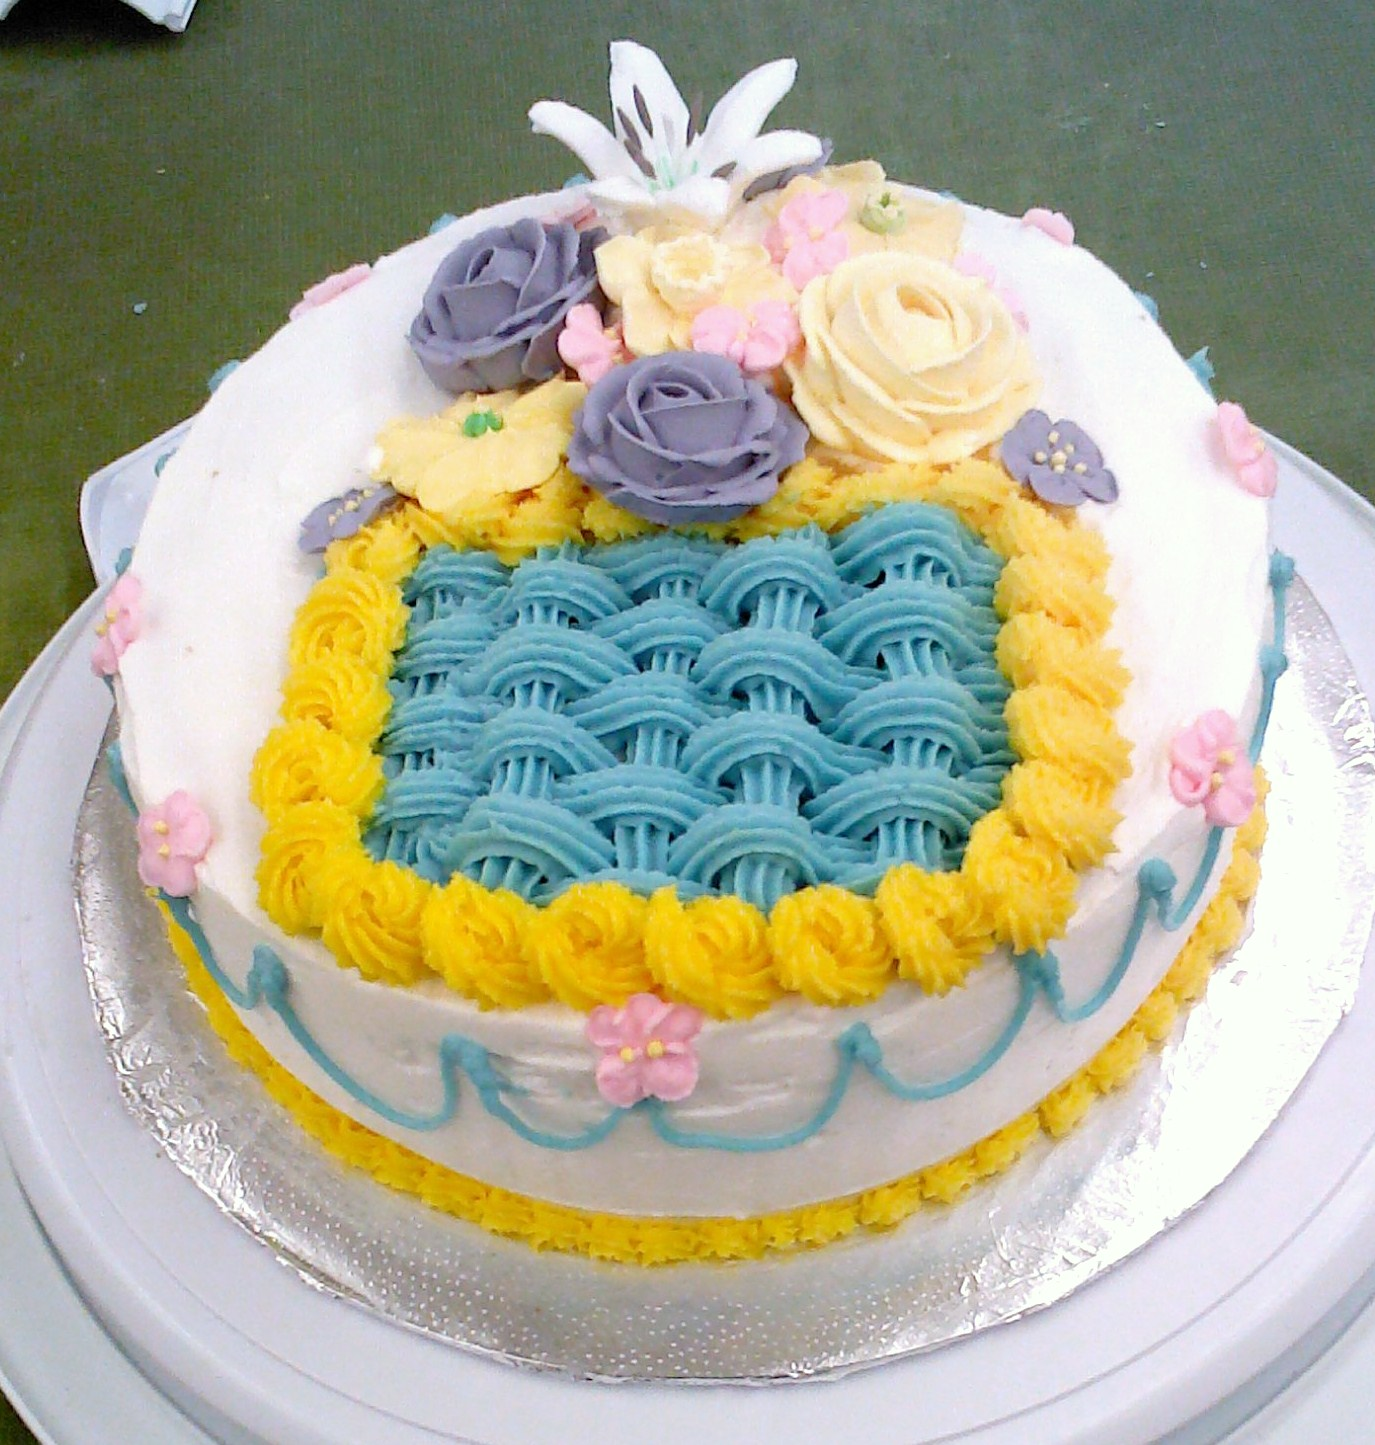 Cours Cake Design Nice : Korin s sweet creations: Flower and Cake Design (course 2)